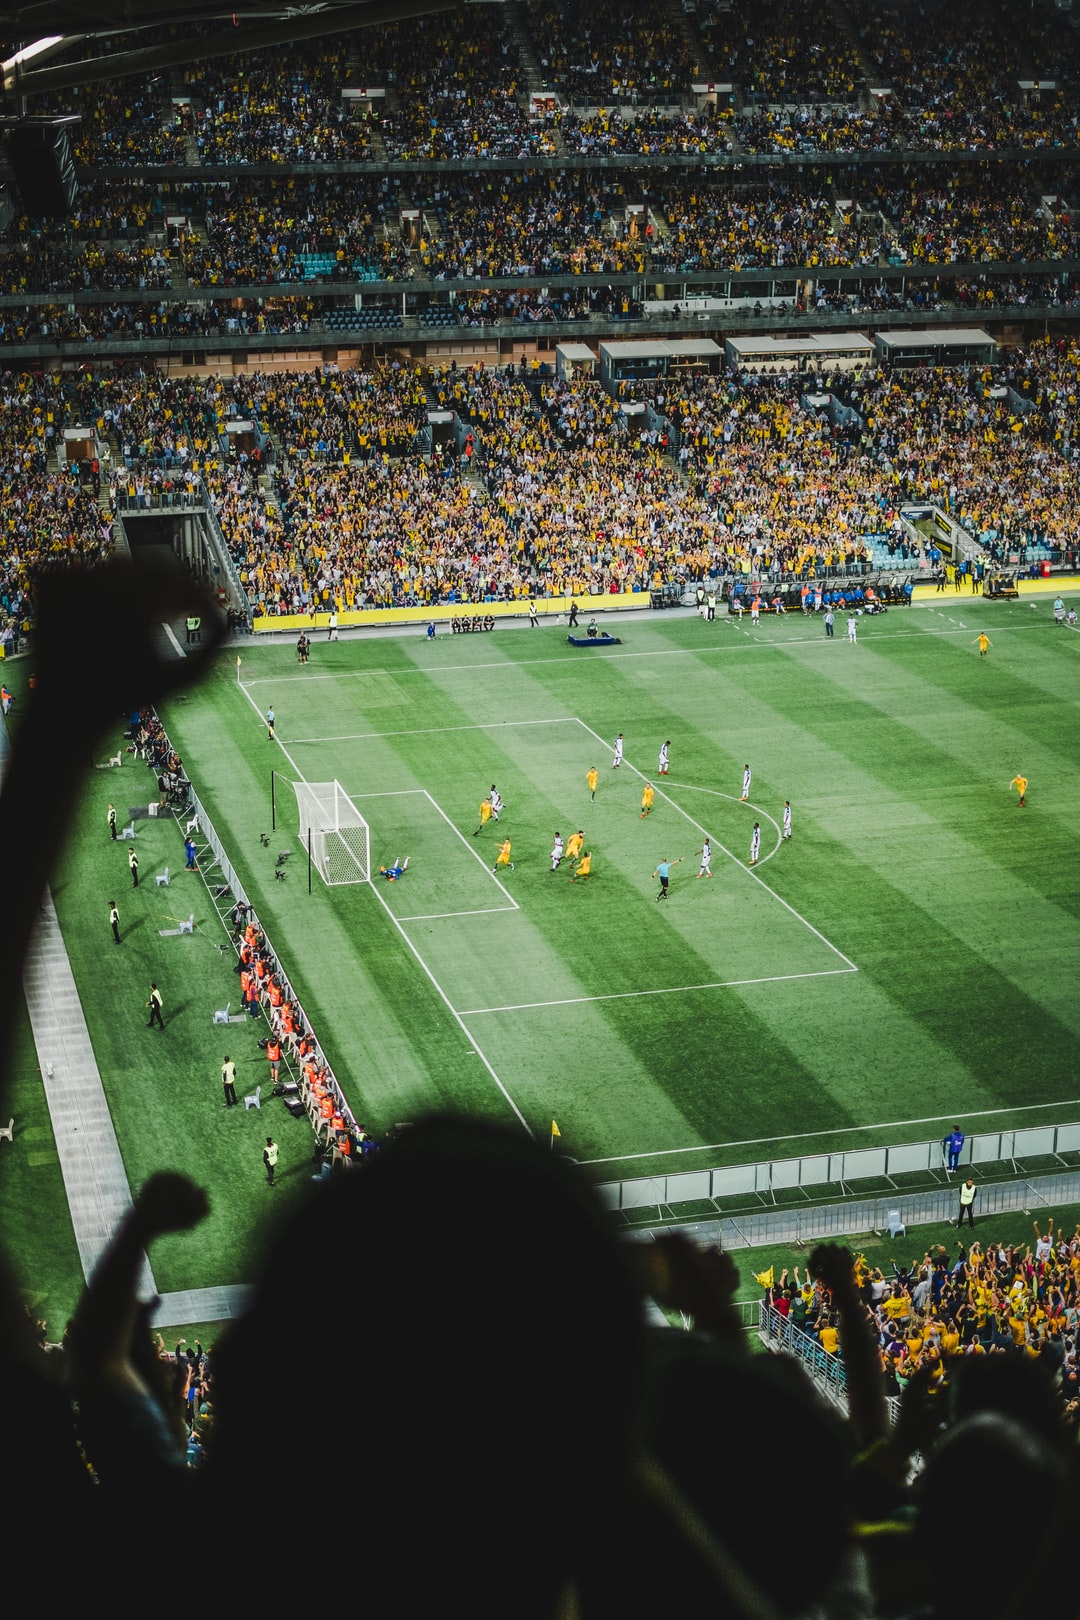 Best 100+ Soccer Pictures [HD] | Download Free Images on Unsplash